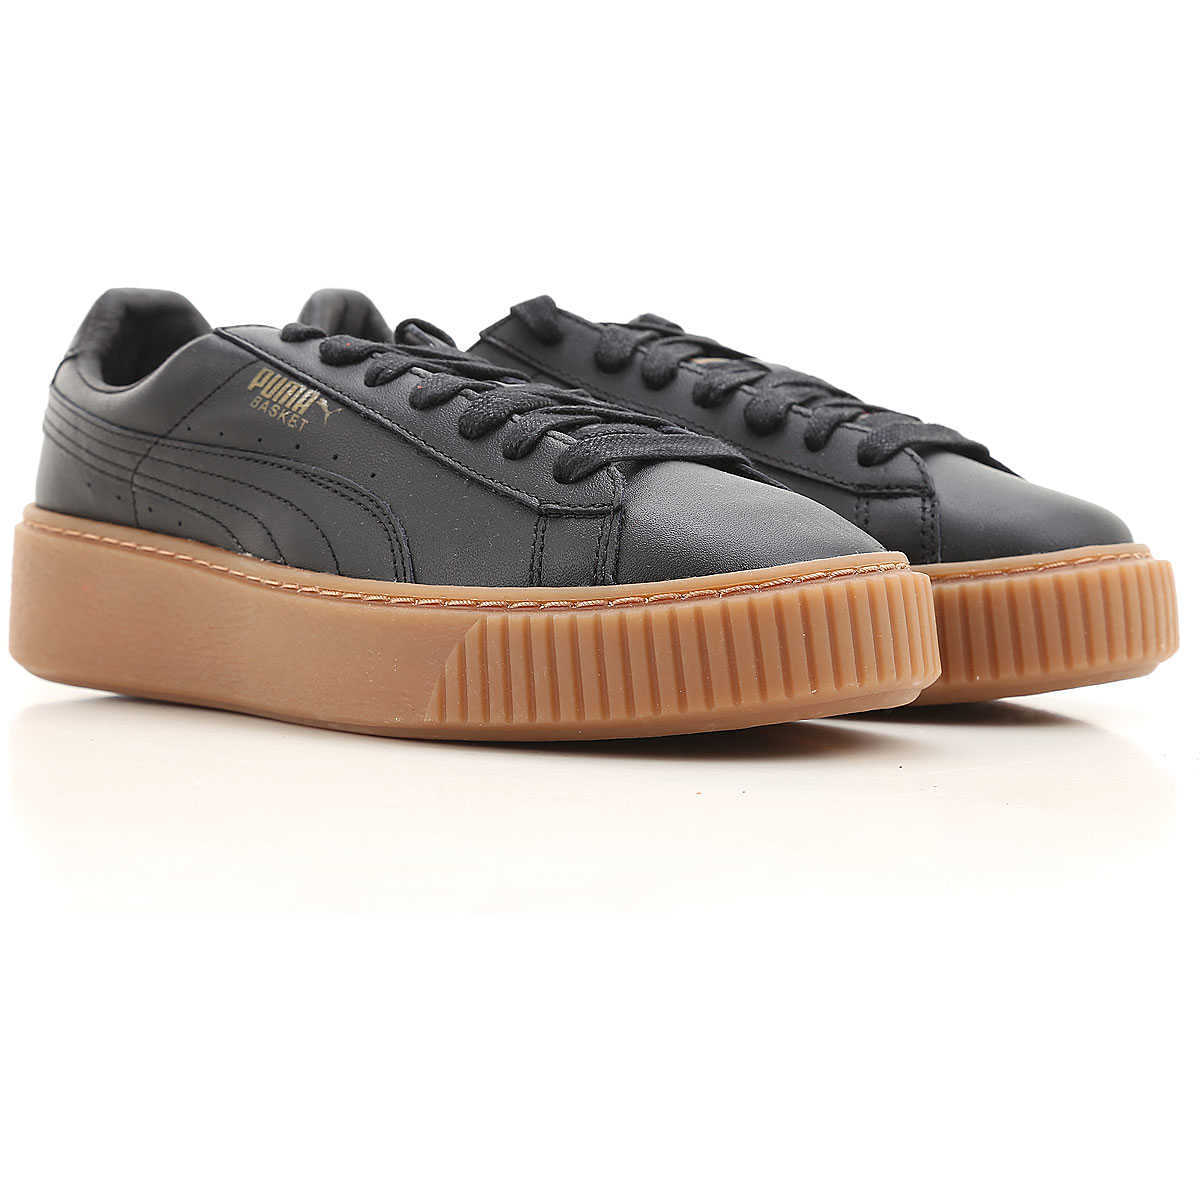 Puma Sneakers for Women On Sale in Outlet Black UK - GOOFASH